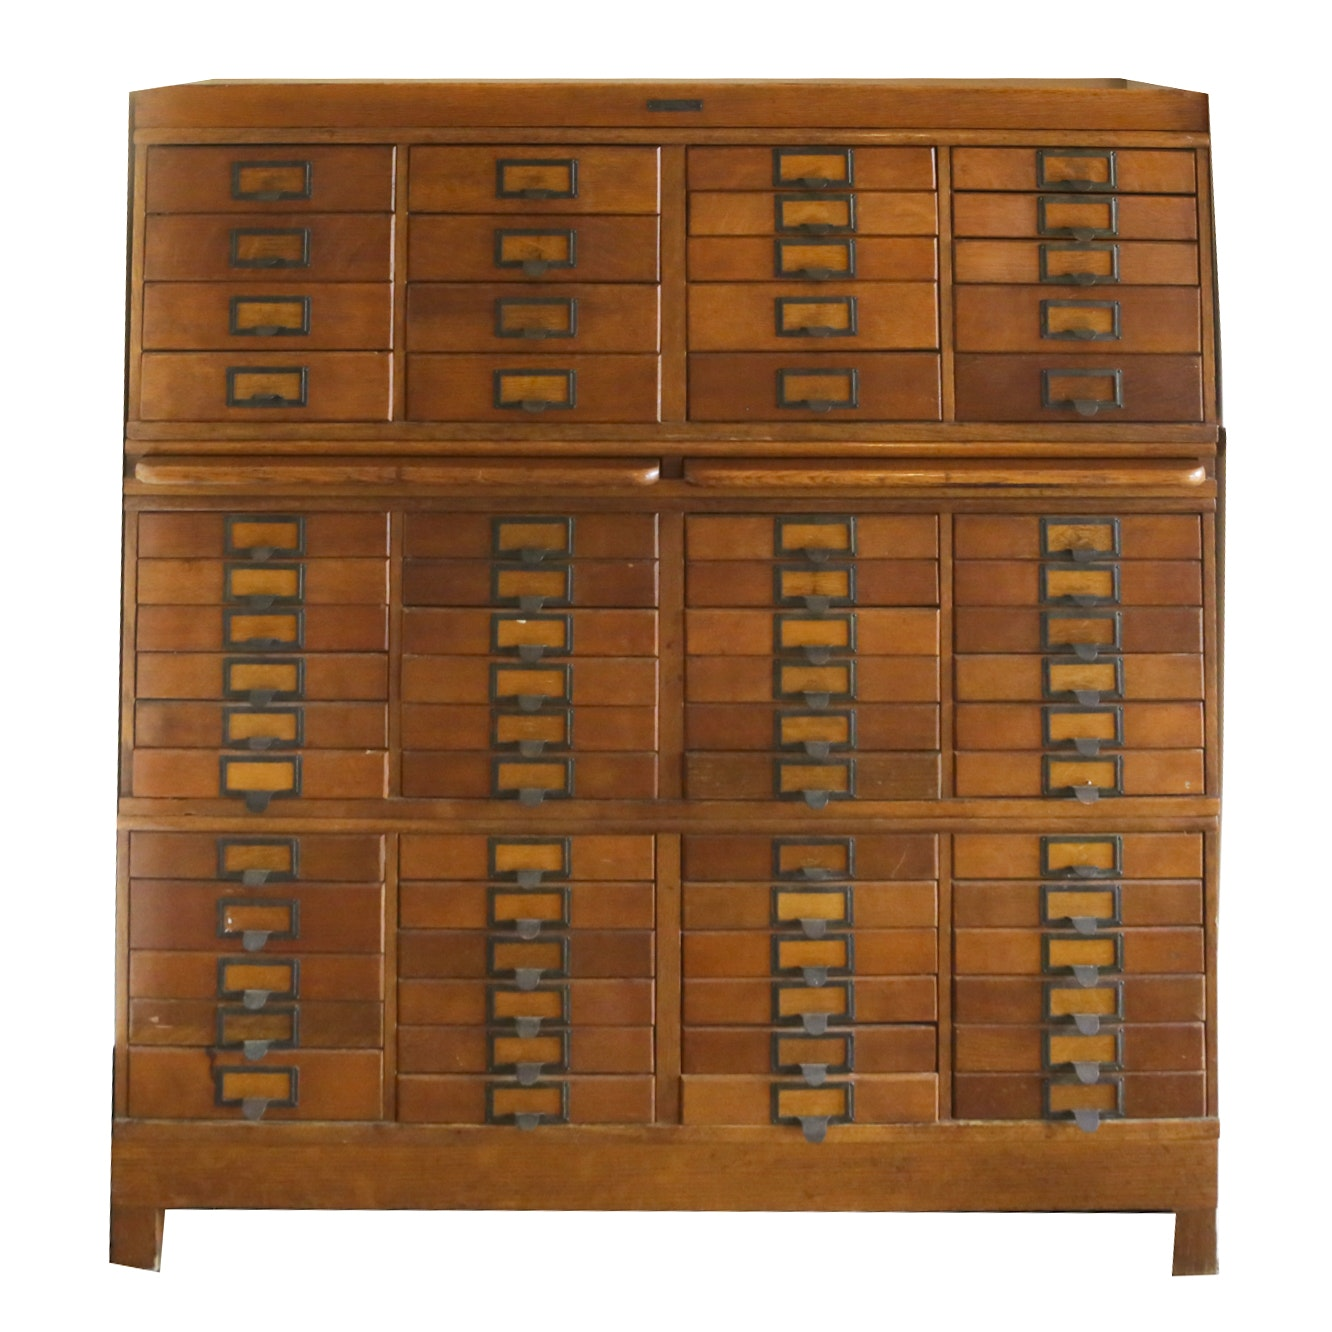 Vintage Oak Stacked File Cabinet by P.A. Wetzel Company